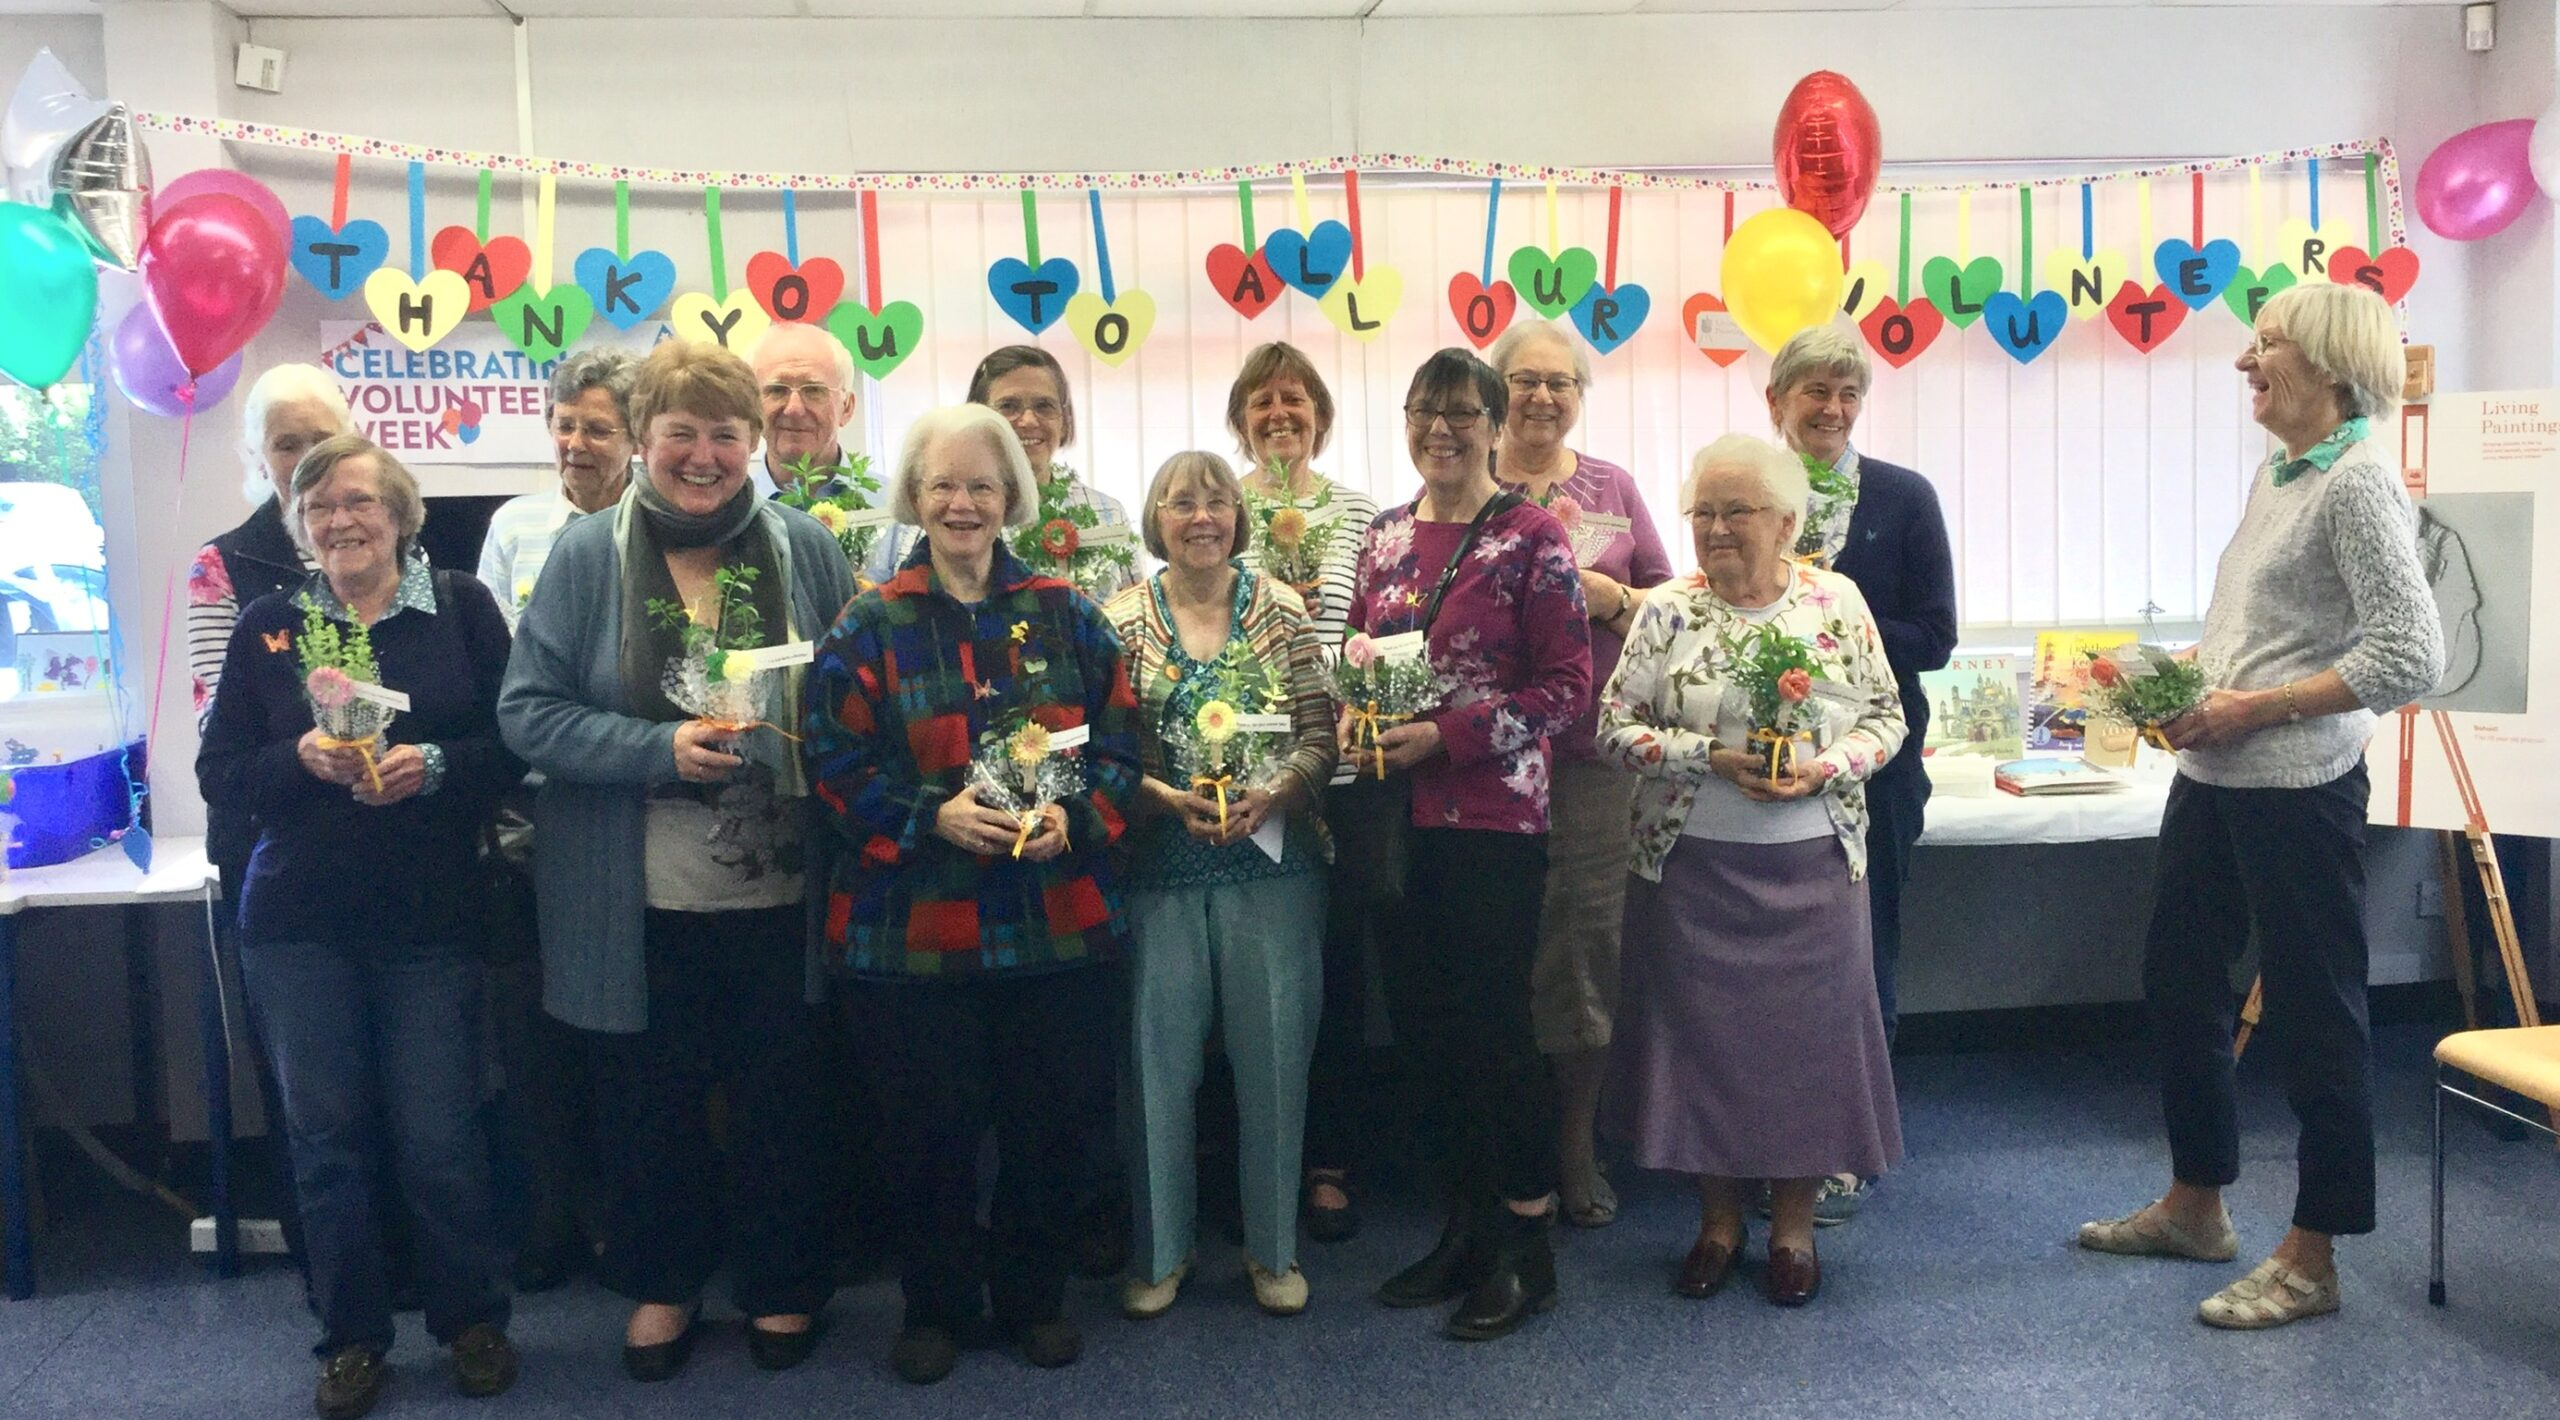 Our volunteers gathered together with plant inspired gifts